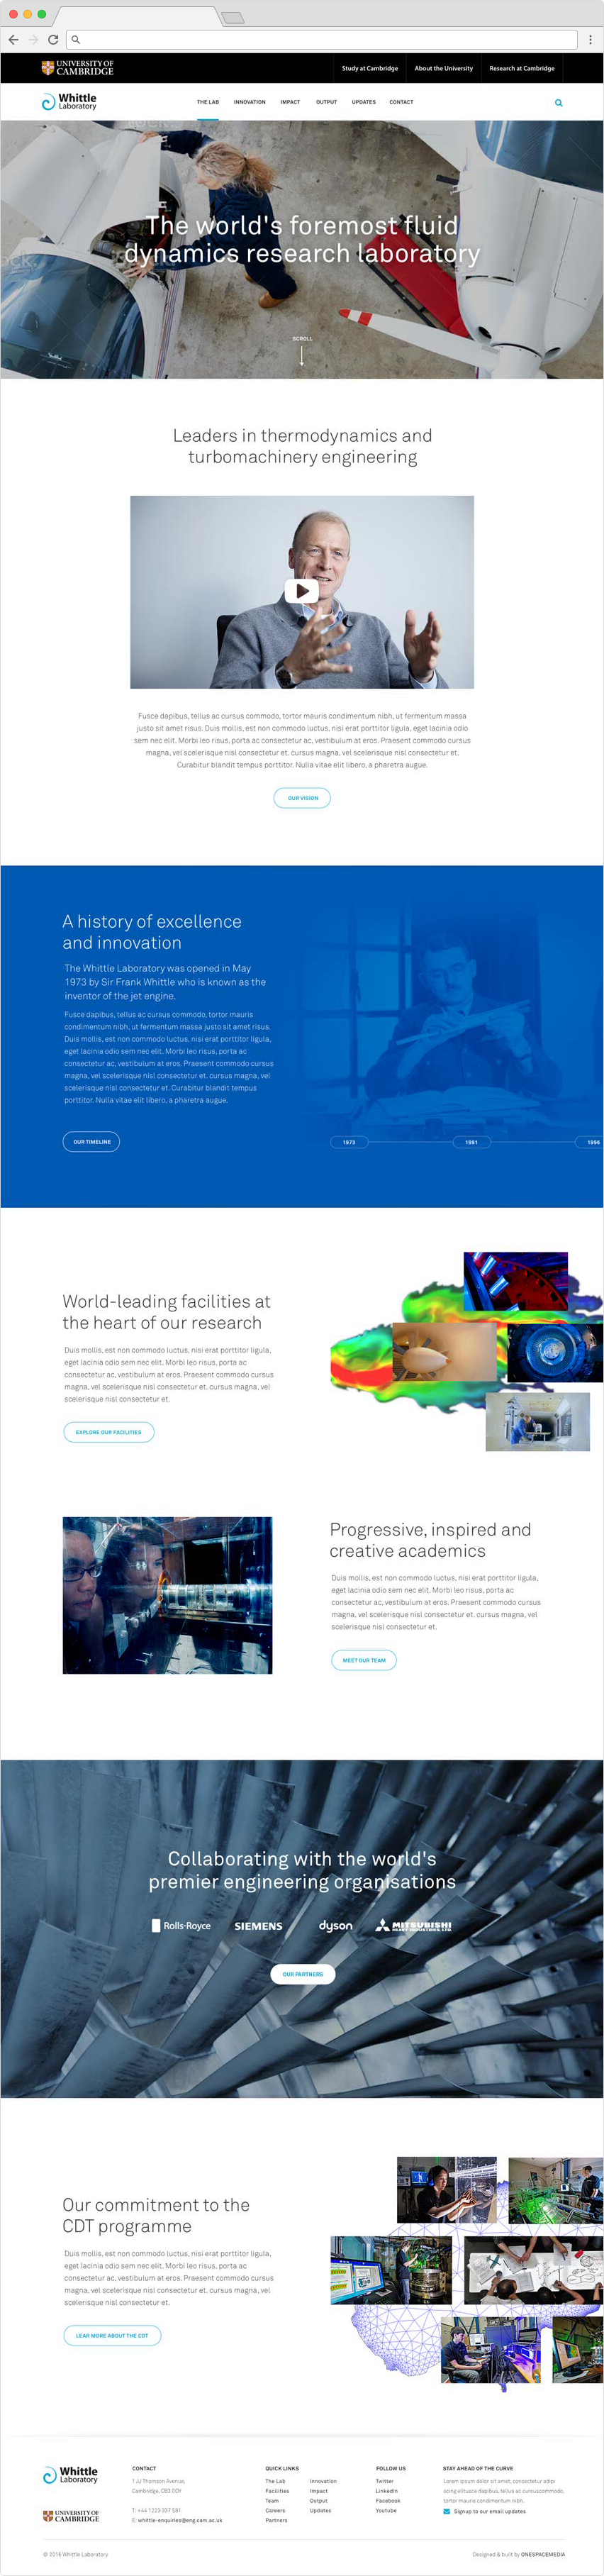 Whittle Laboratory landing page, by Chiara Mensa